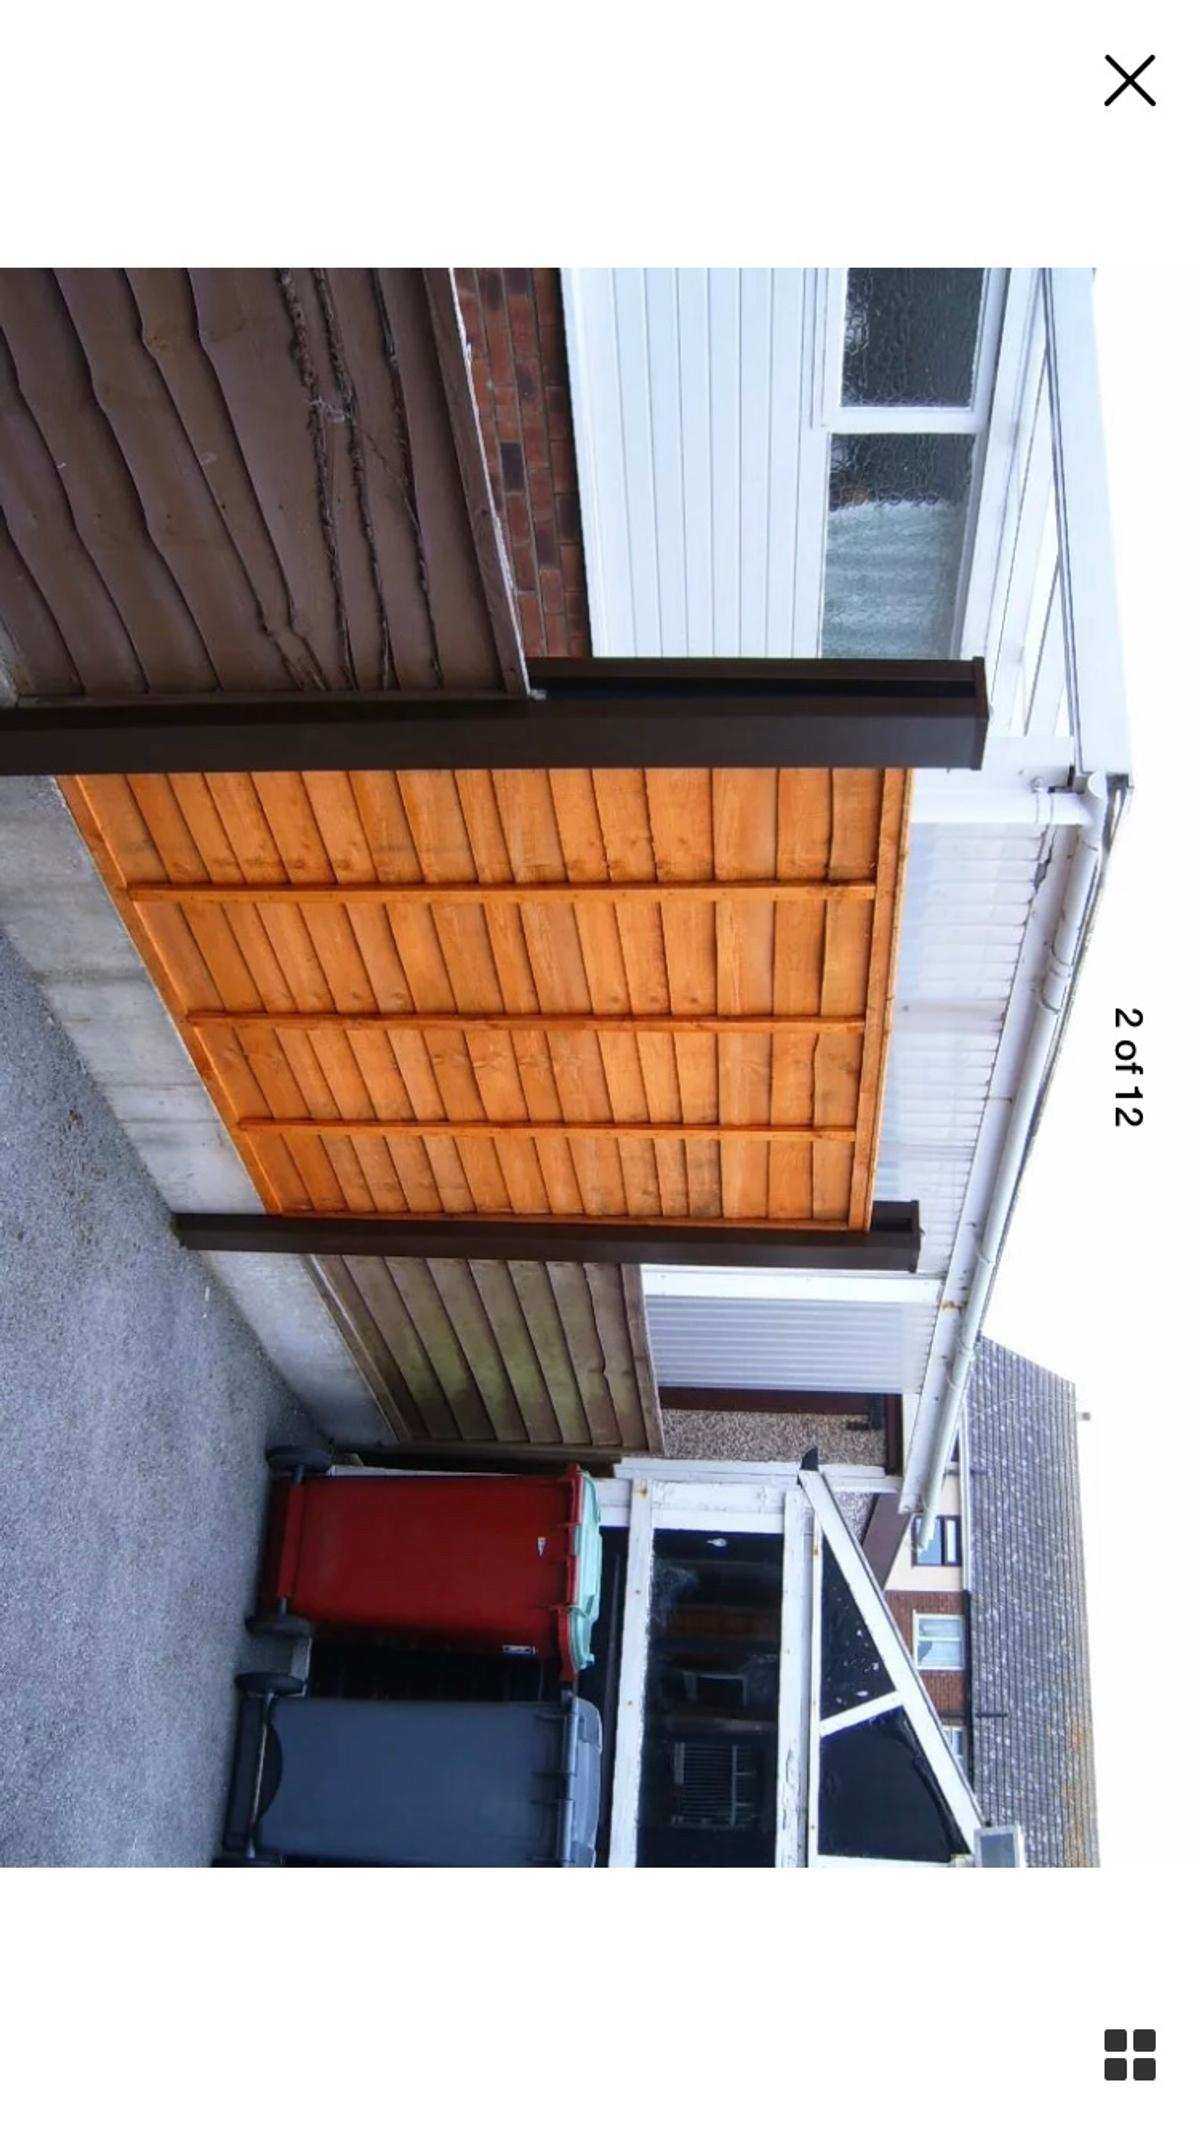 5x Metal Fence Post Cover/Extender in Leigh on Sea for